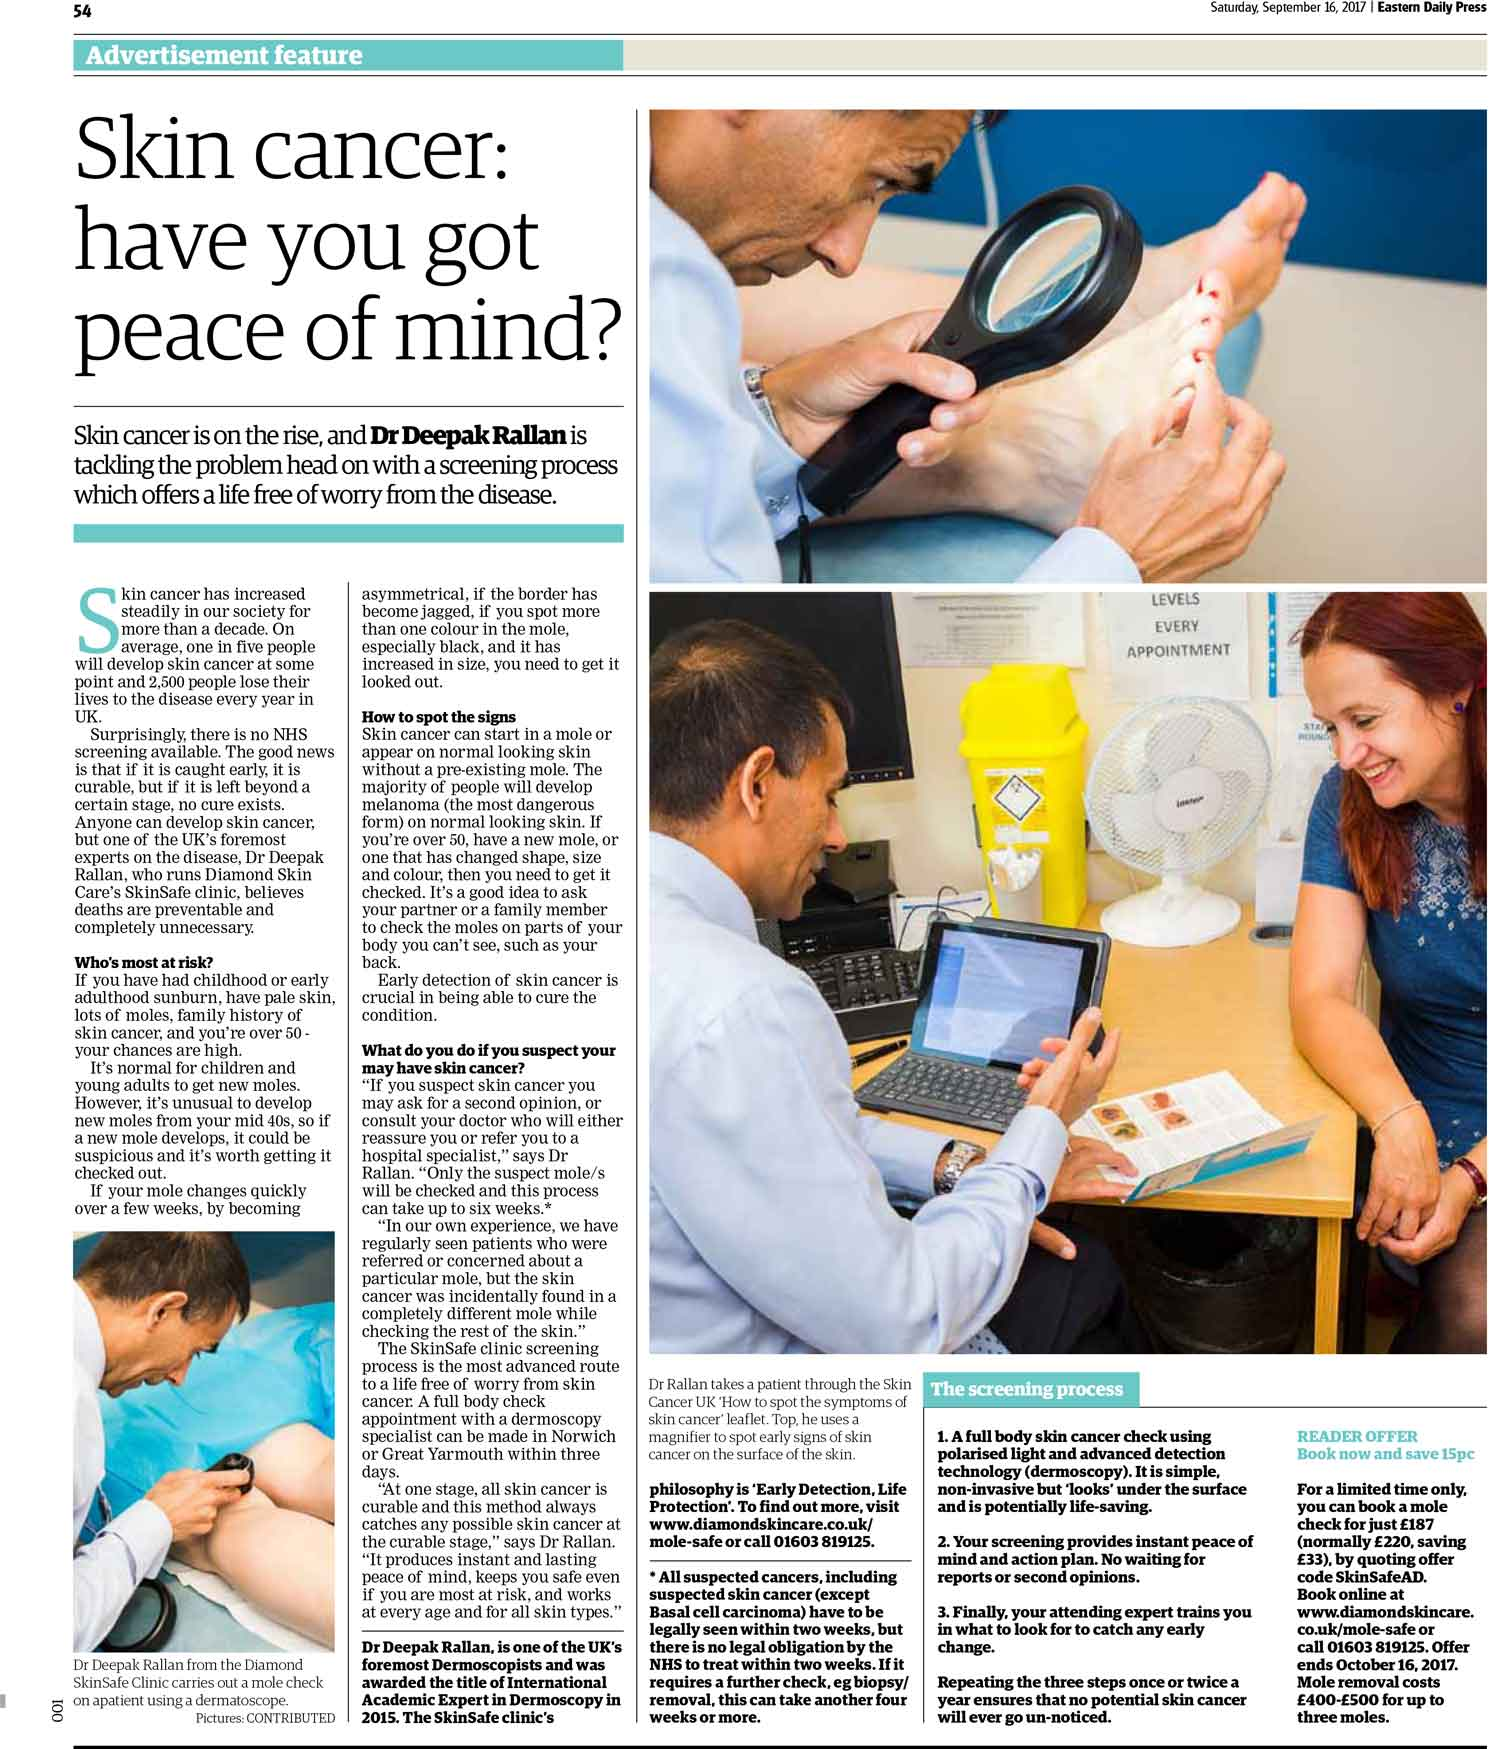 Skin cancer advertorial for Diamond Skincare